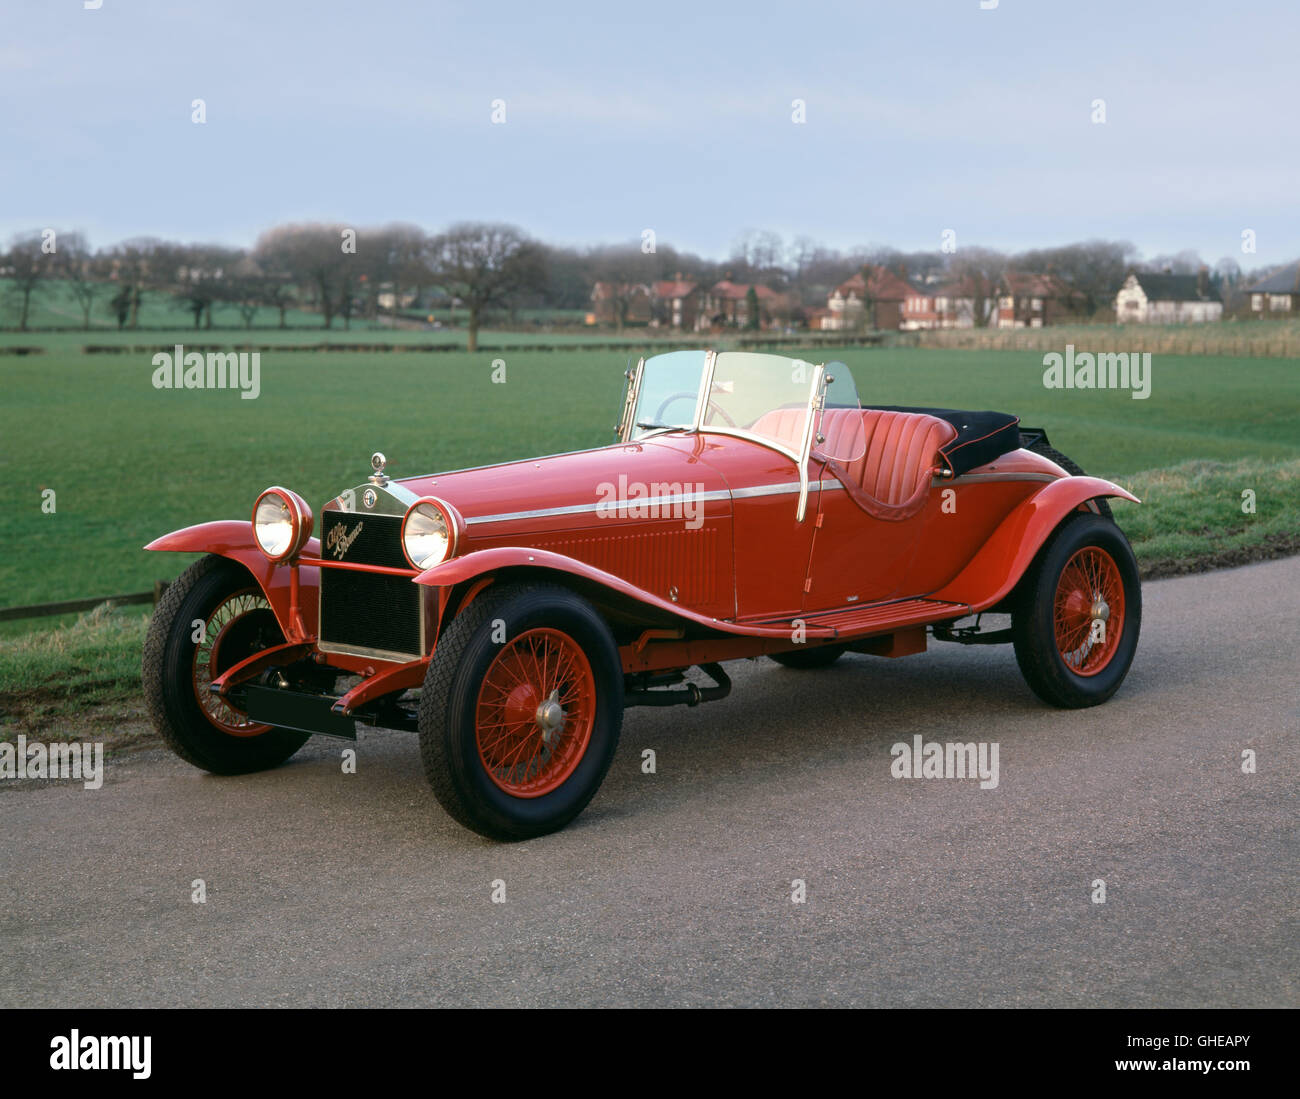 1929 Alfa Romeo Supercharged 1500 1750 Zagato with 1 75 litre engine Country of origin Italy - Stock Image